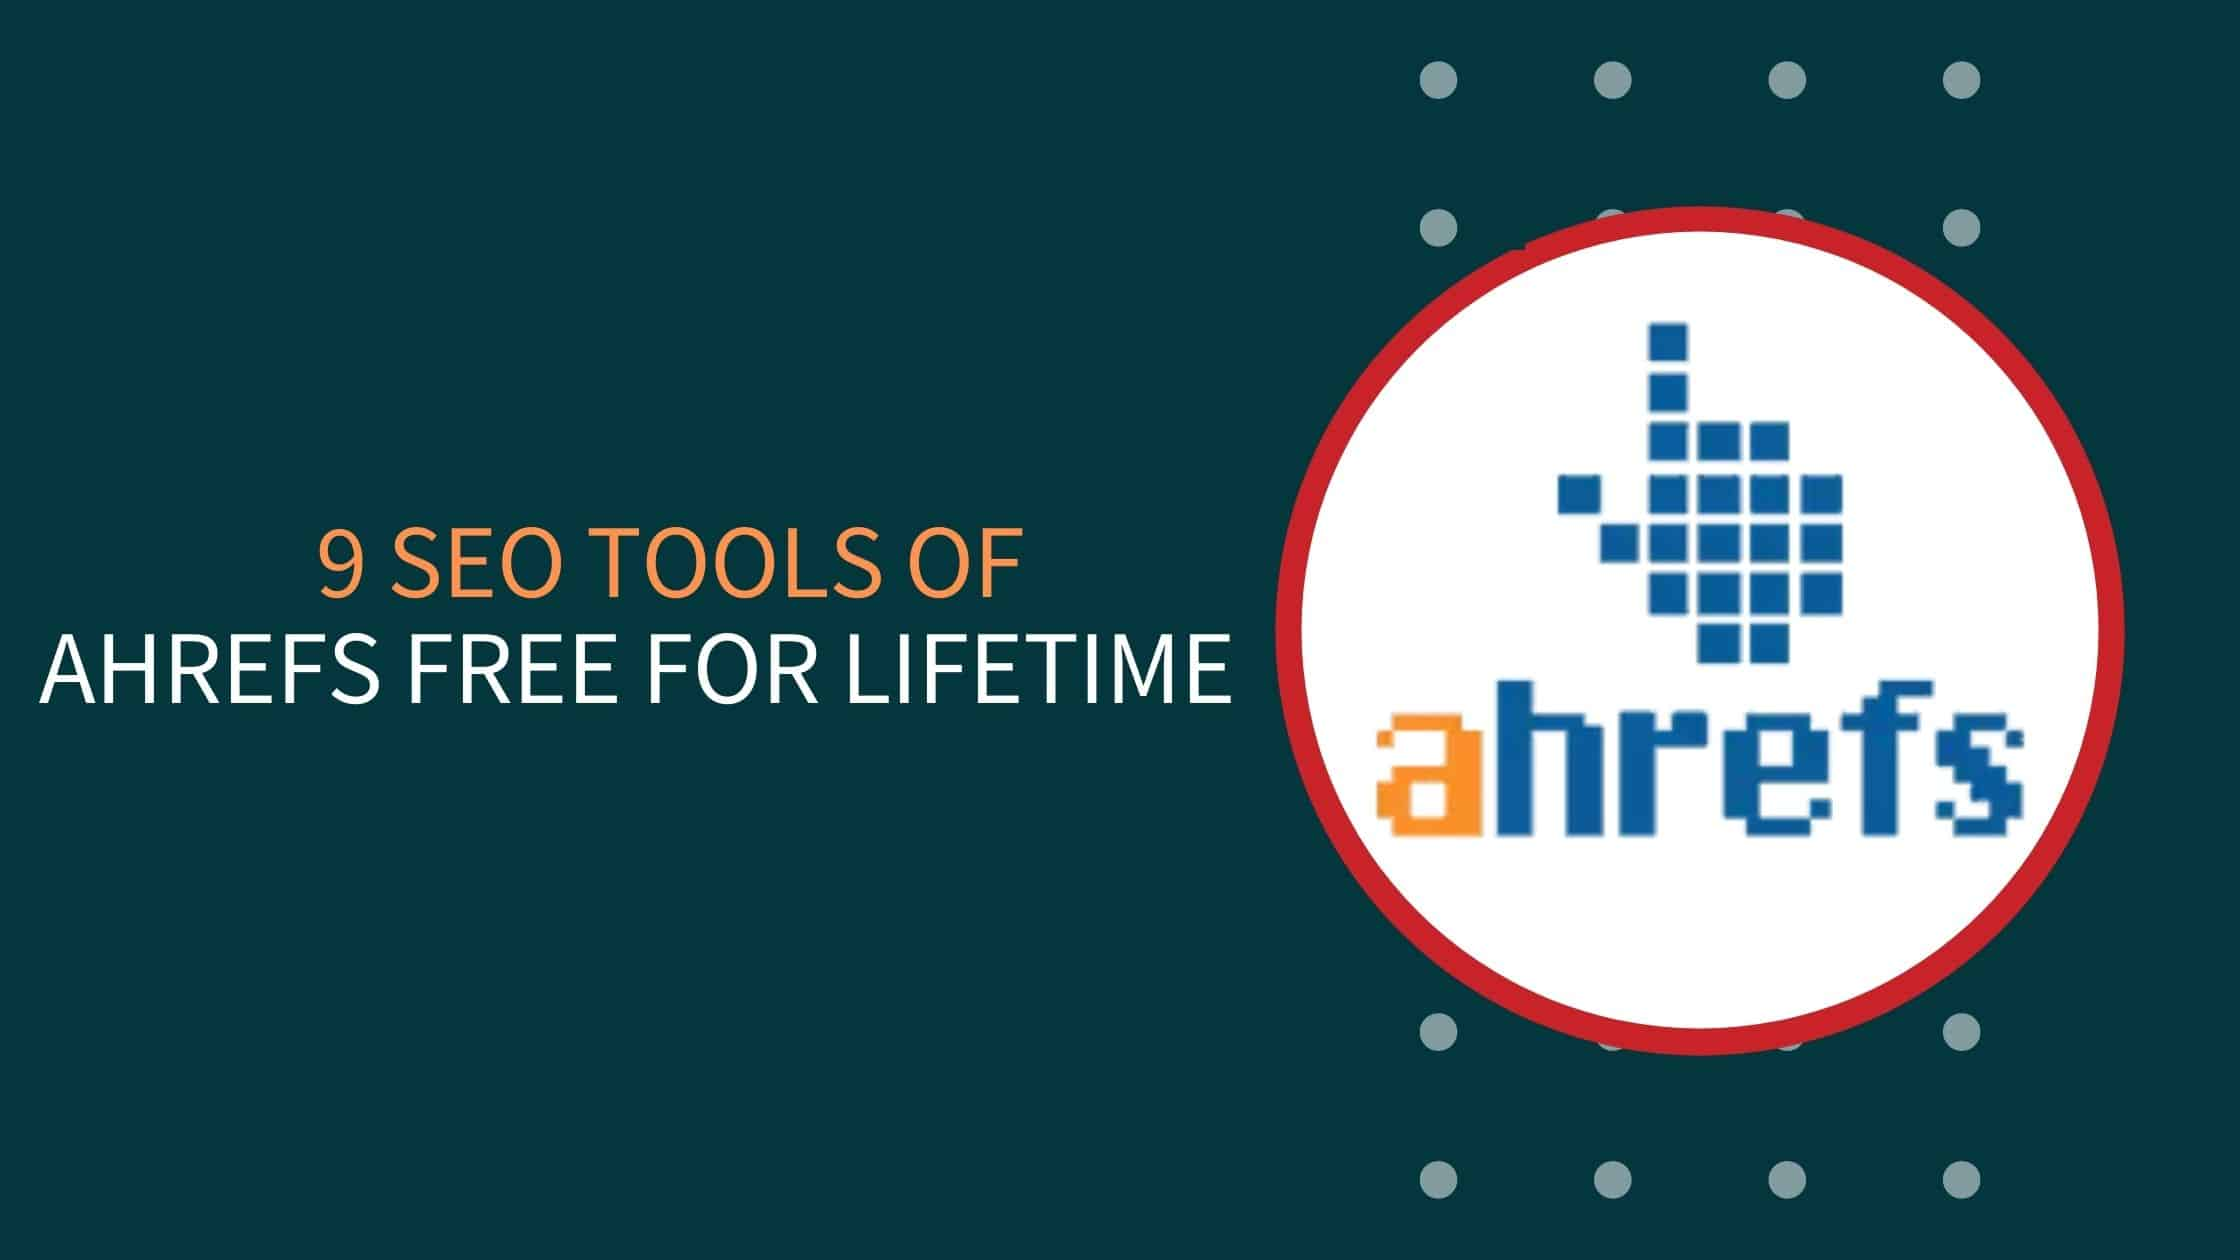 9 SEO Tools Of Ahrefs Free For Lifetime {Without Cookies}